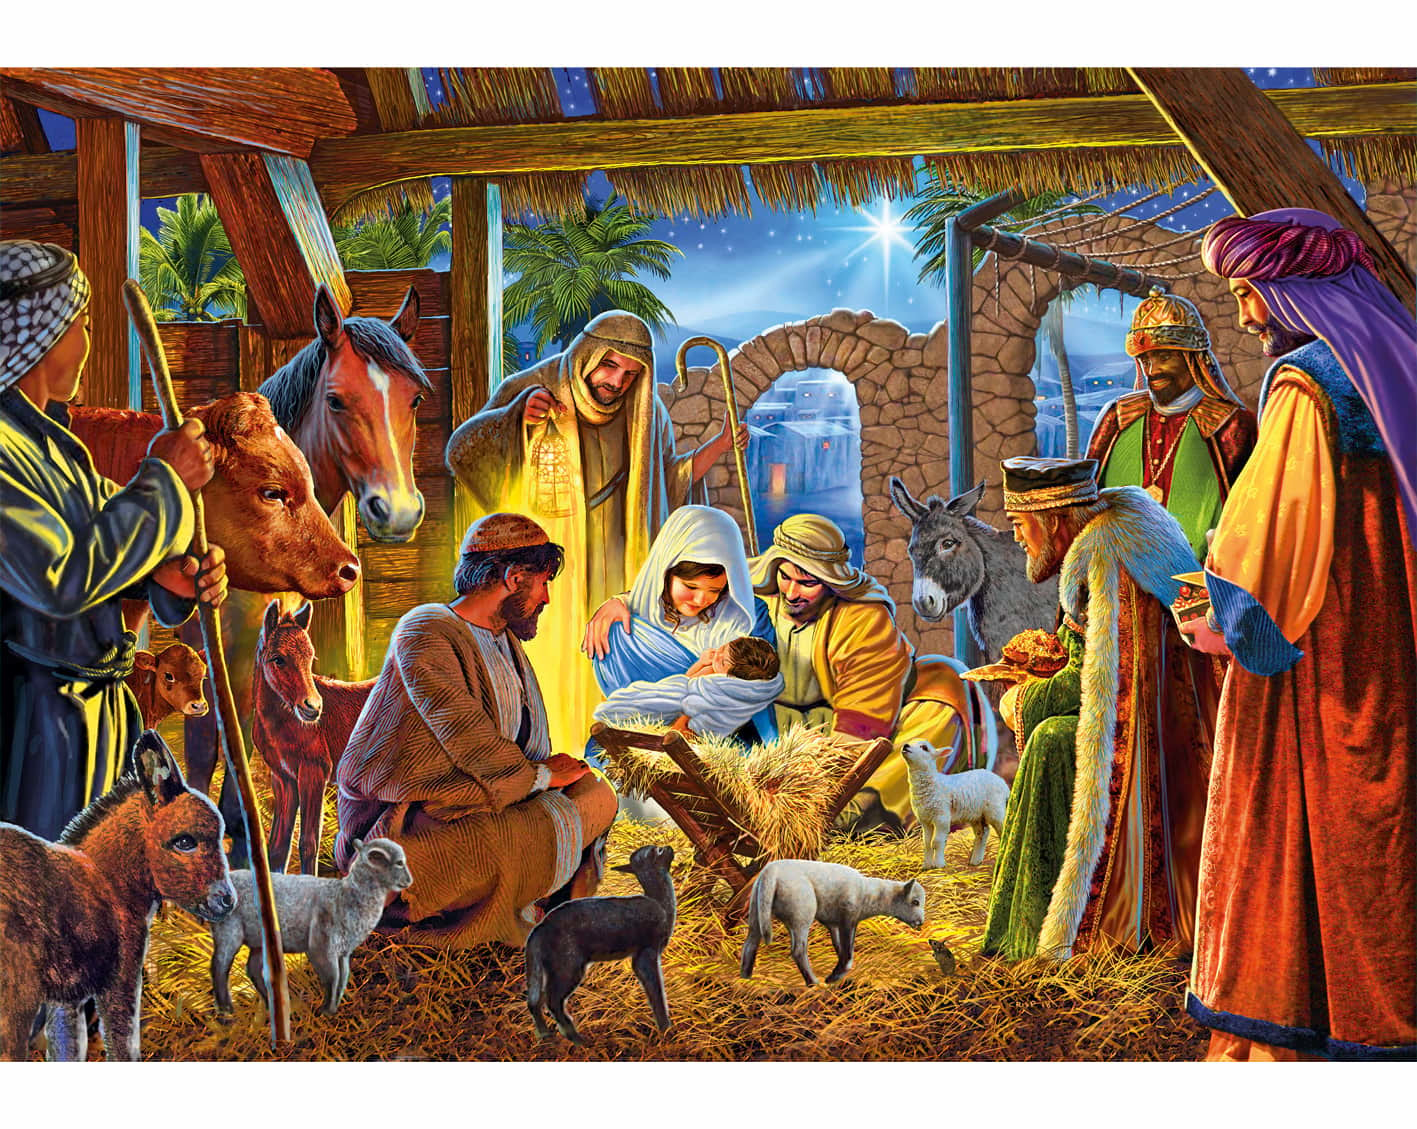 Nativity Scene Fine Art Jigsaw Puzzles